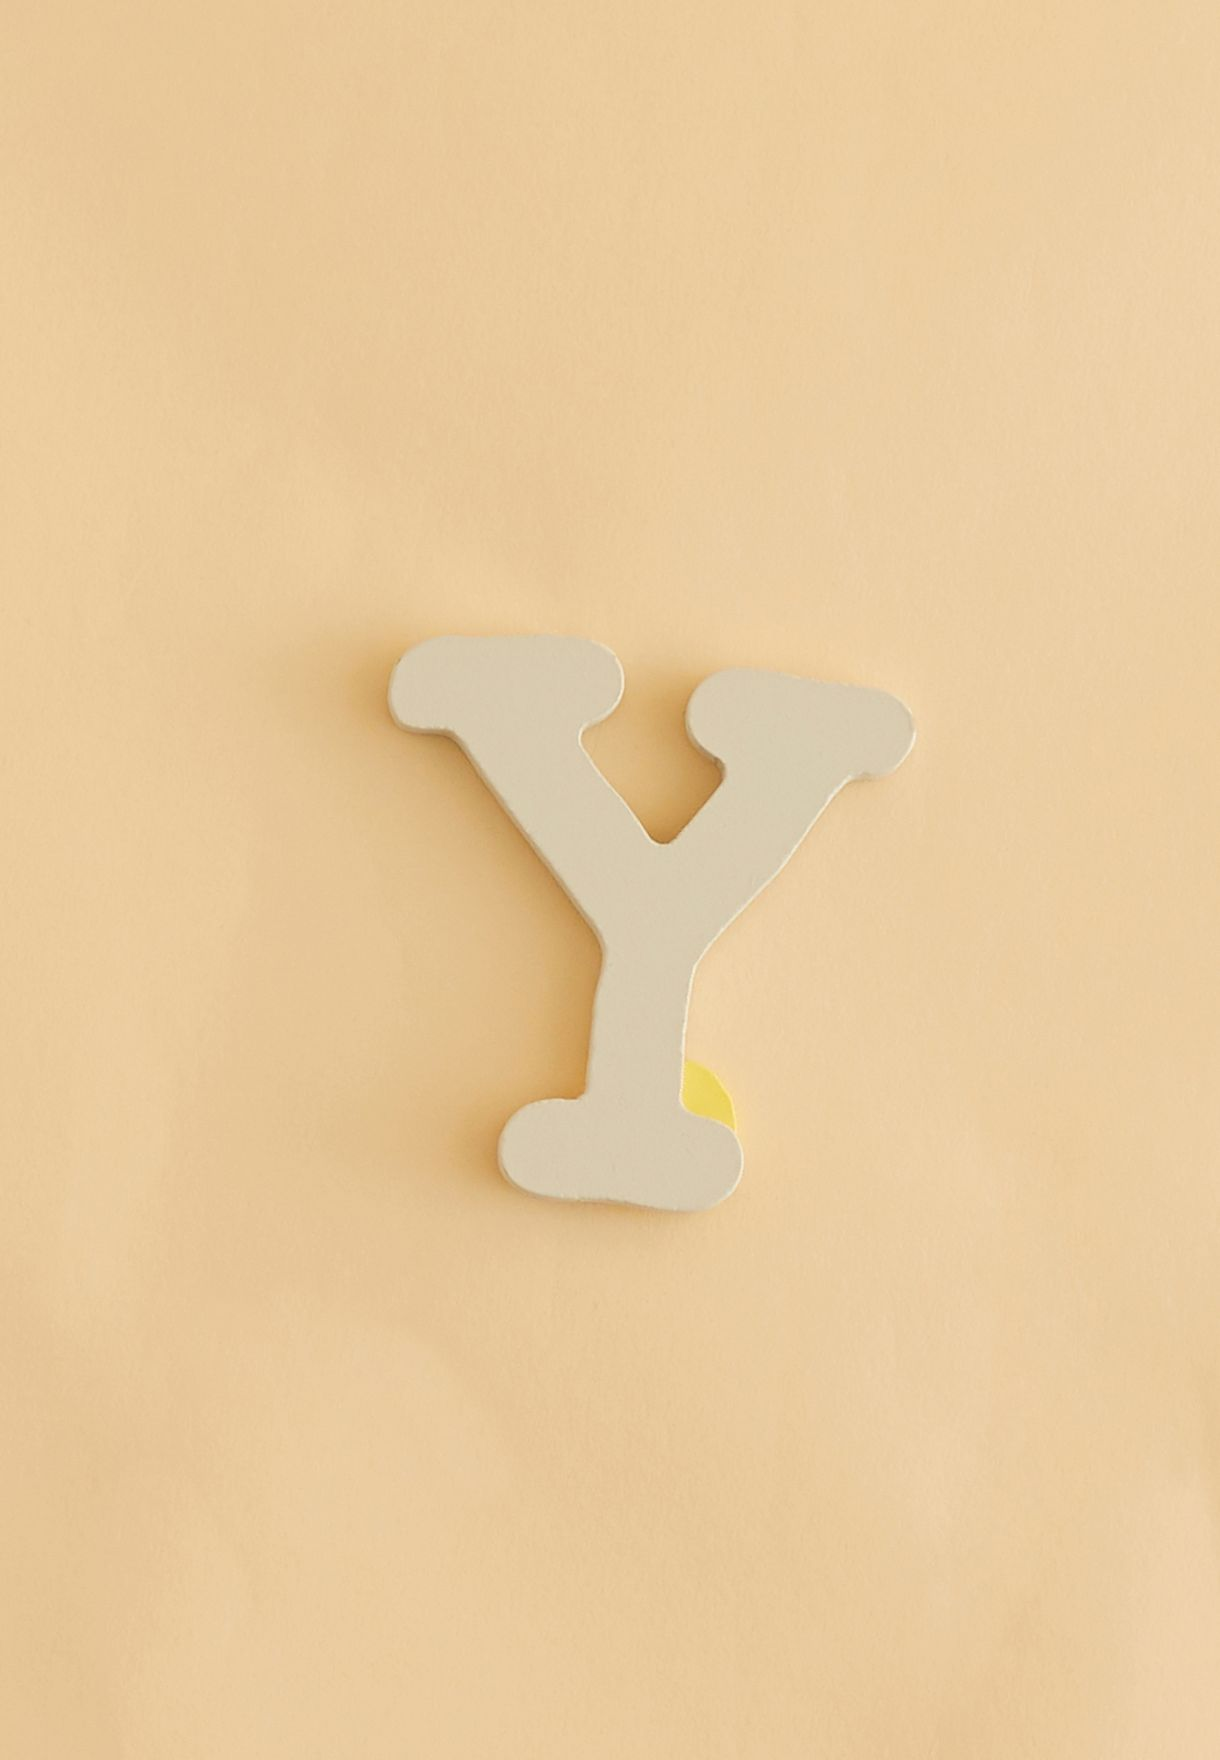 Initial Y Wooden Letter